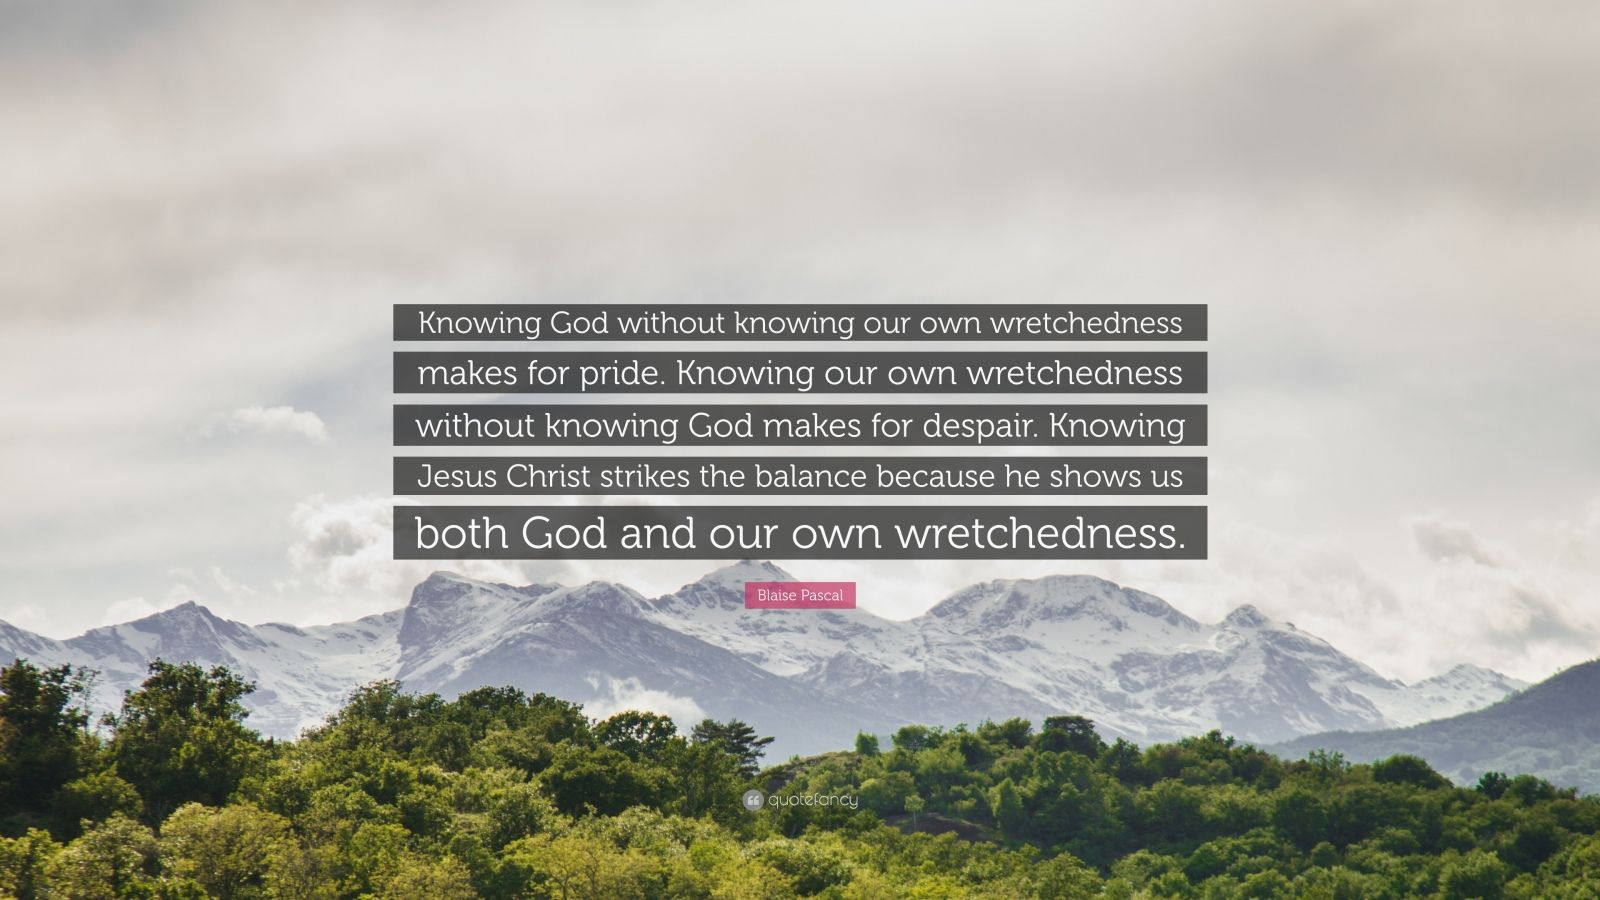 """Blaise Pascal Quote: """"Knowing God without knowing our own wretchedness makes for pride. Knowing our own wretchedness without knowing God makes for despair. Knowing Jesus Christ strikes the balance because he shows us both God and our own wretchedness."""""""